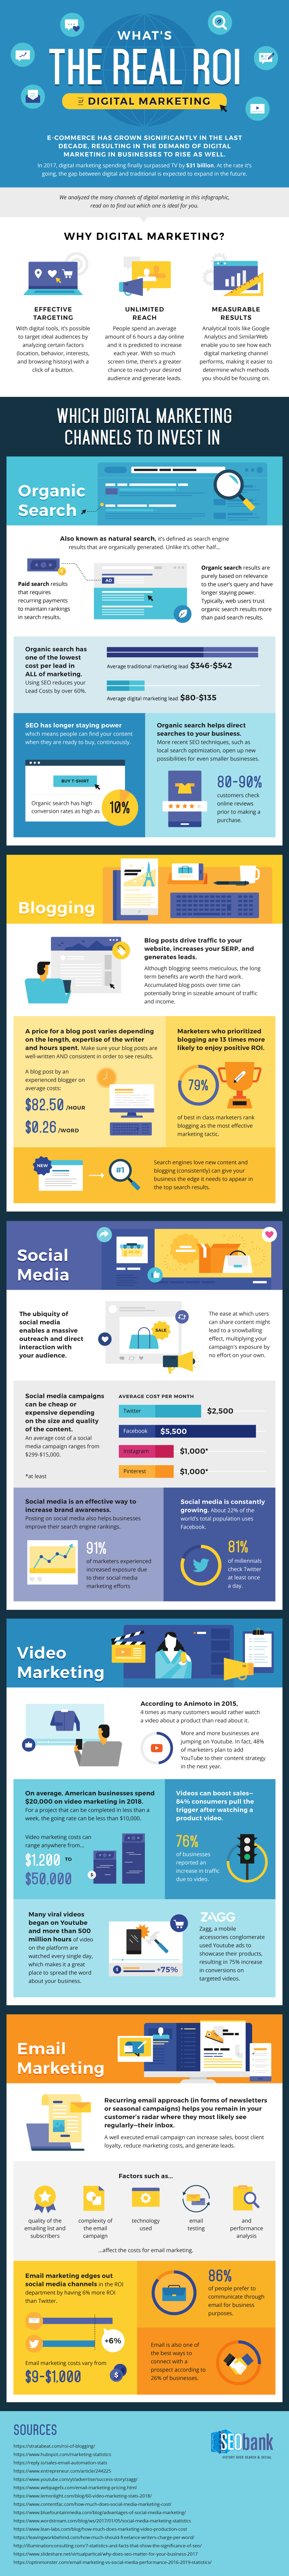 SEO bank infographic - The Real ROI of Digital Marketing